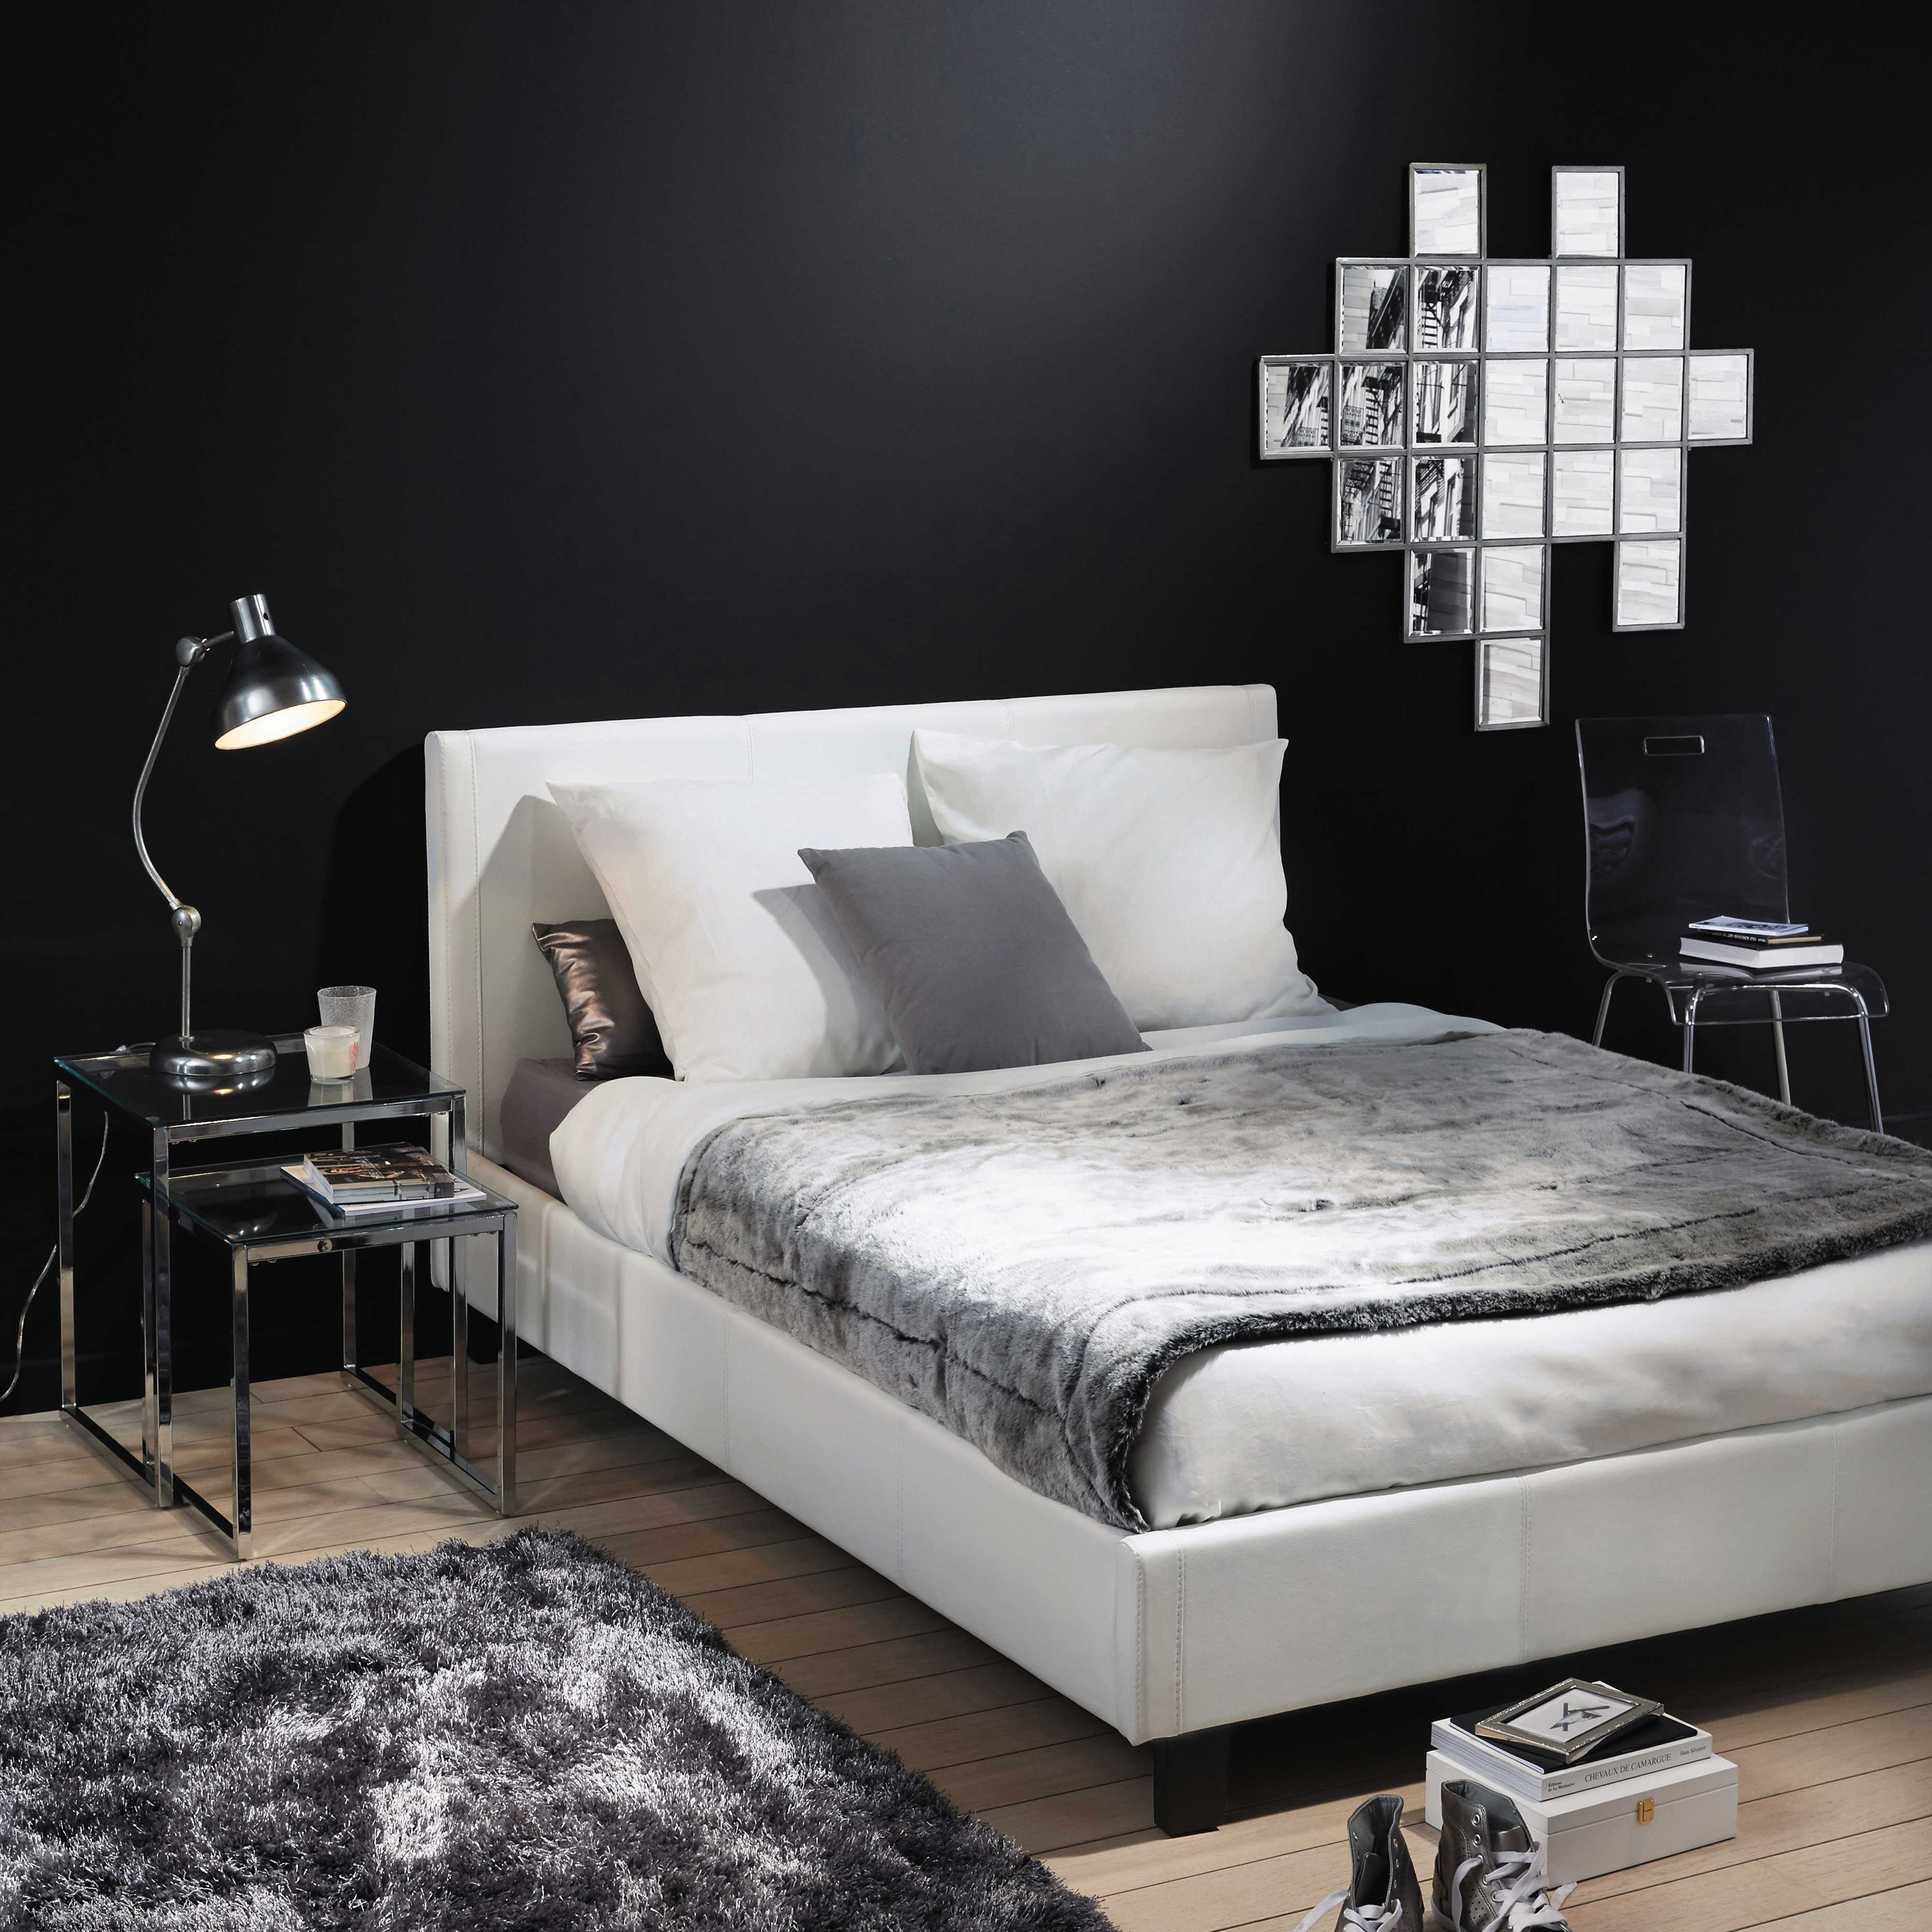 Letto da 140 cm in similpelle bianco - Zen Zen  Maisons du Monde  Bedroom  Bedroom, Room e ...